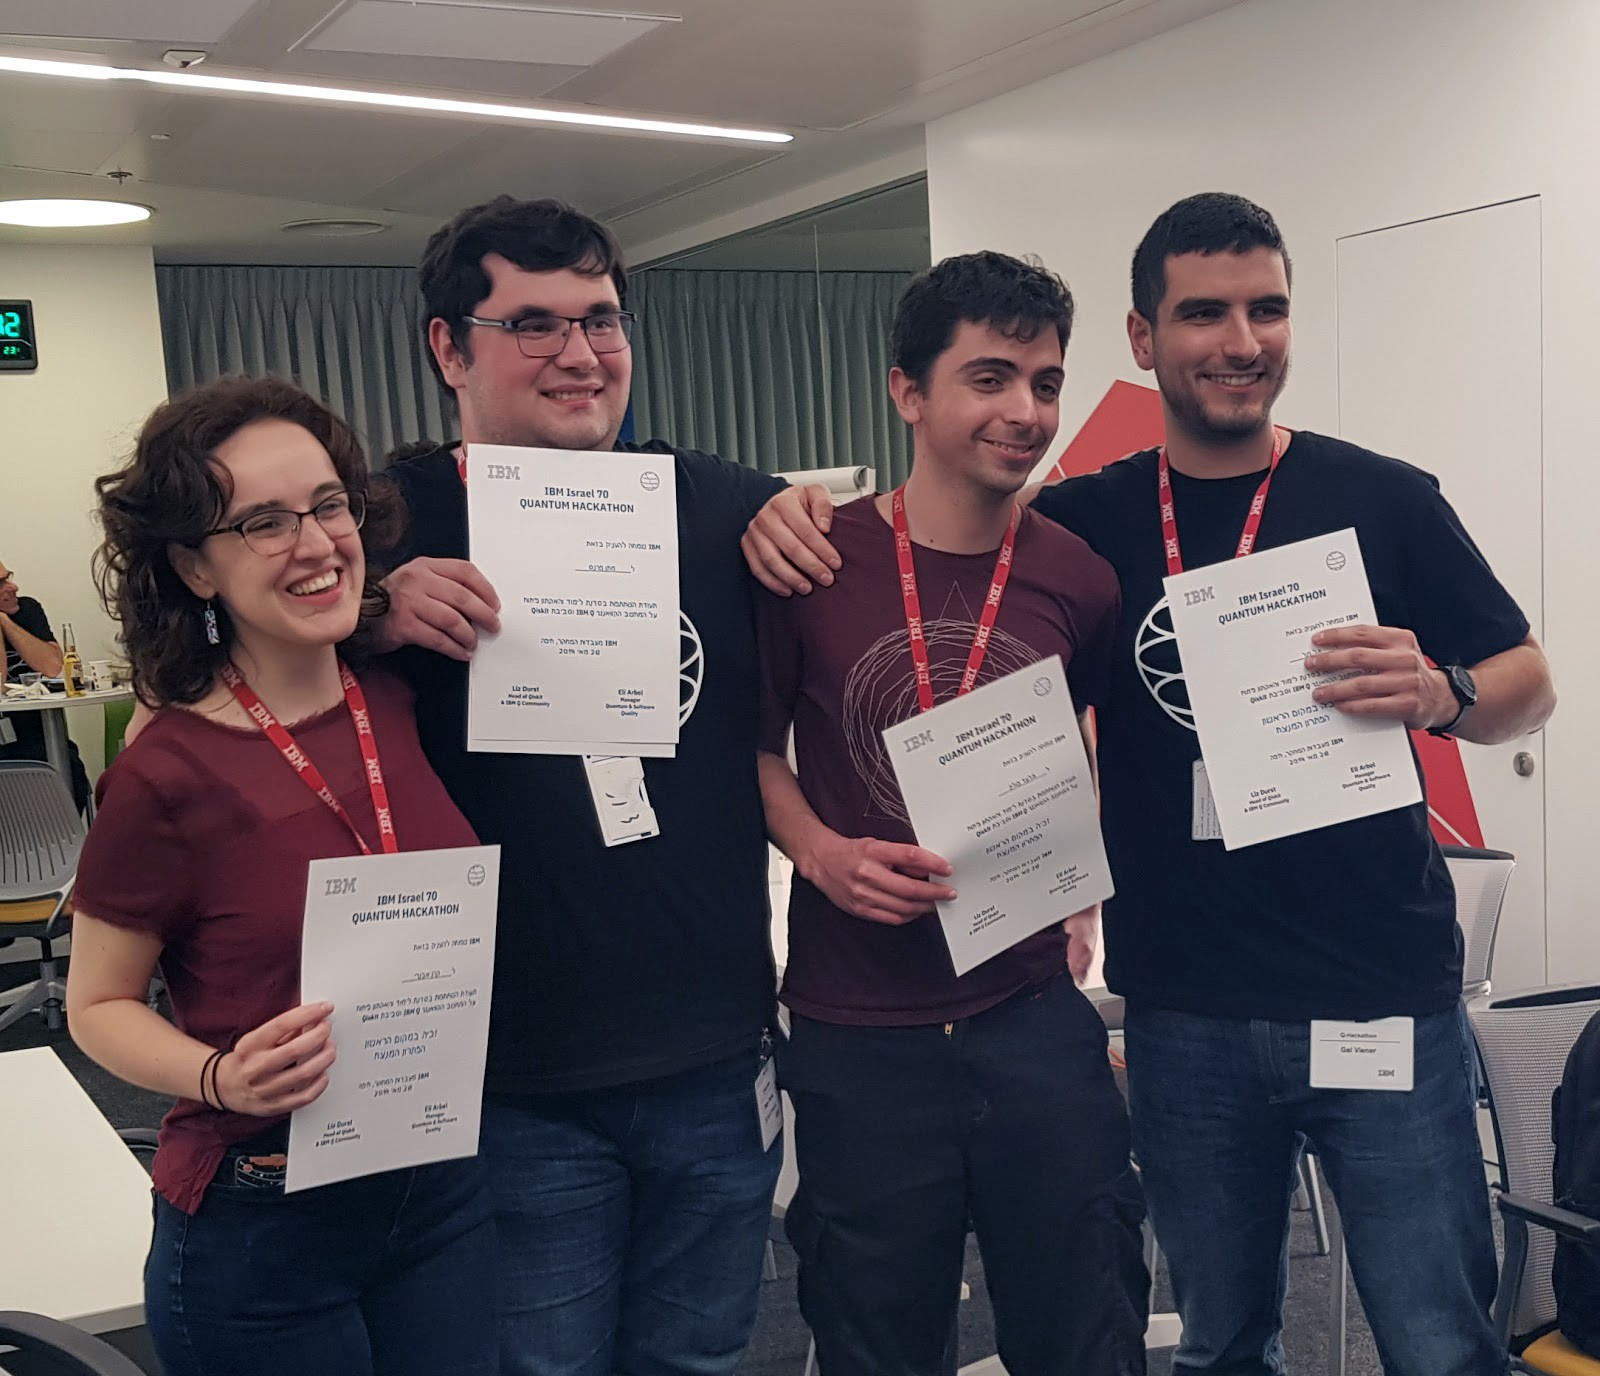 Four students holding certificates